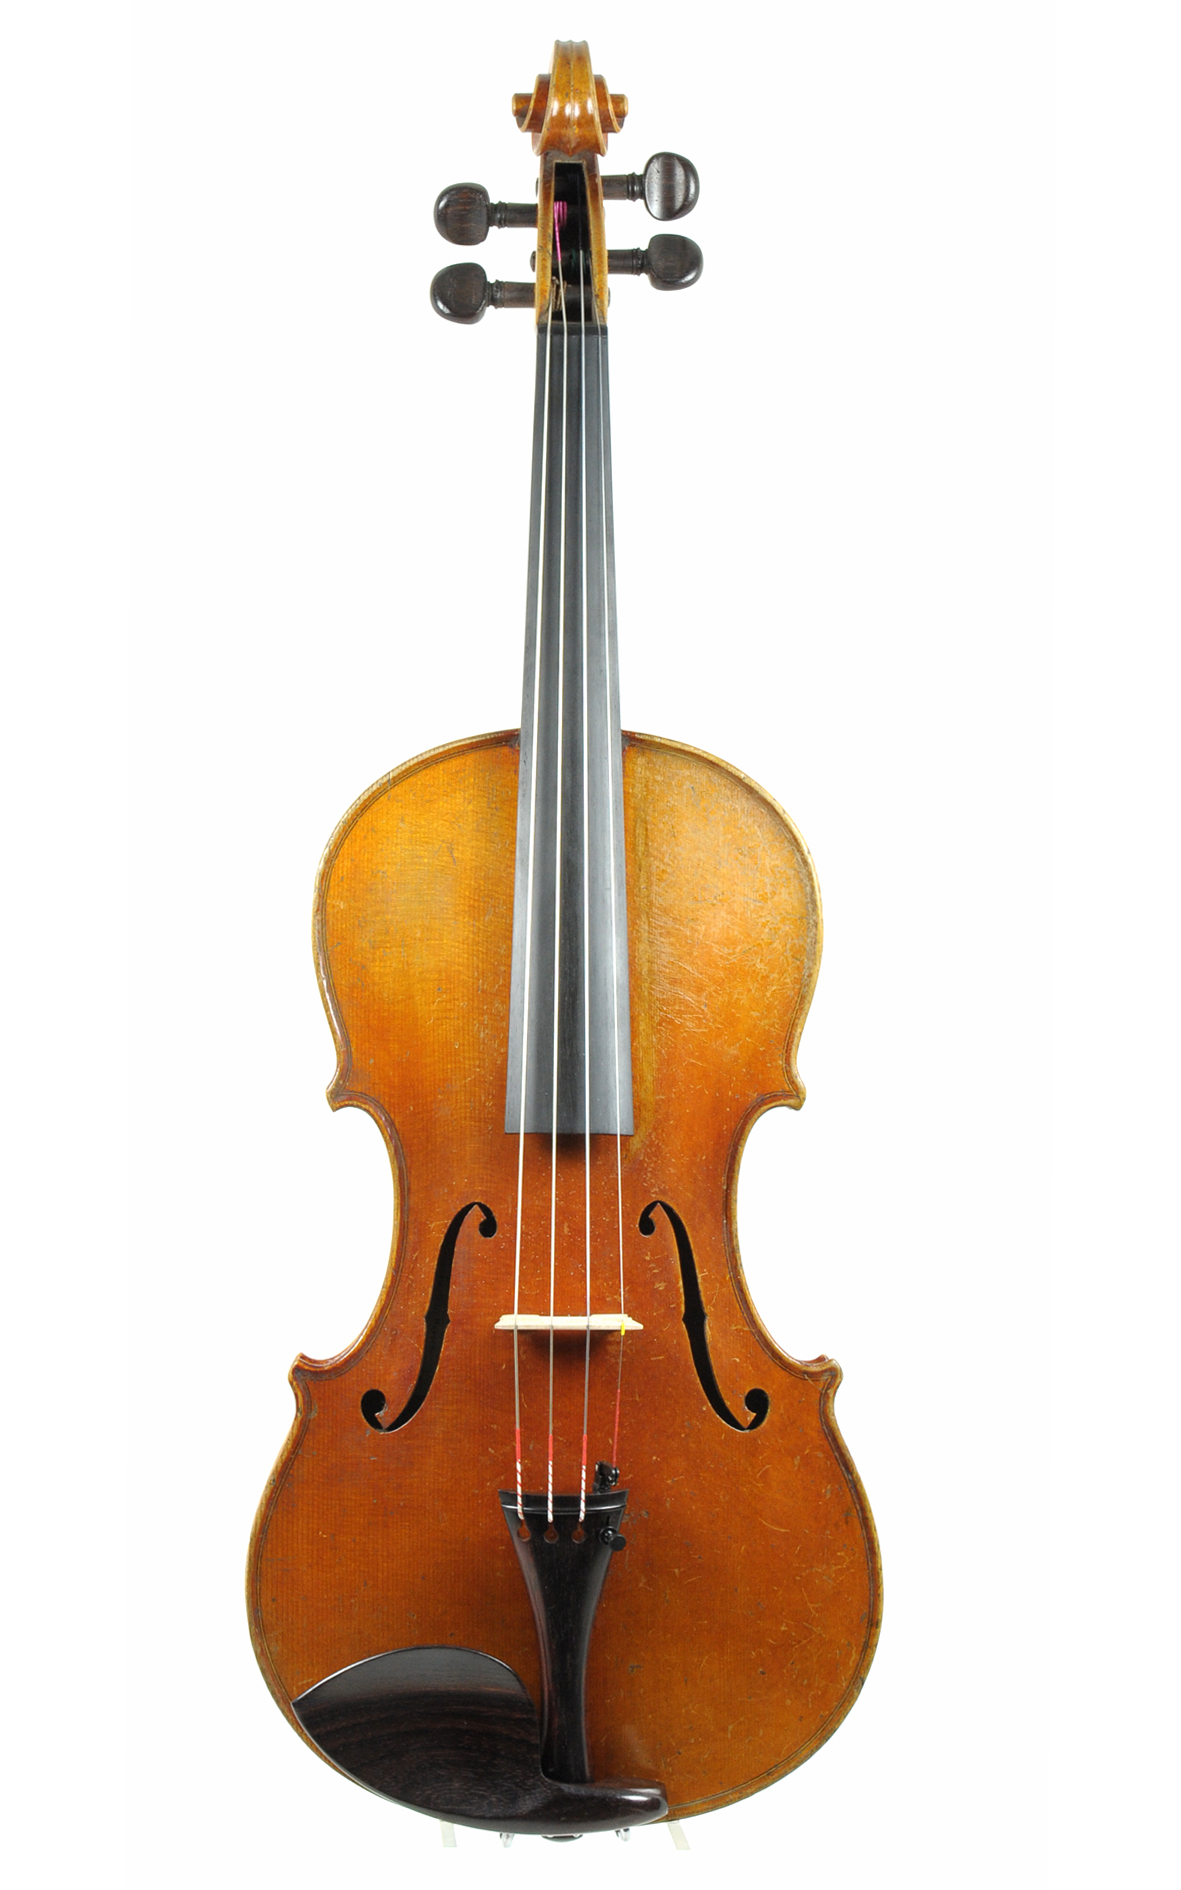 Violin by J. A. Baader, Mittenwald